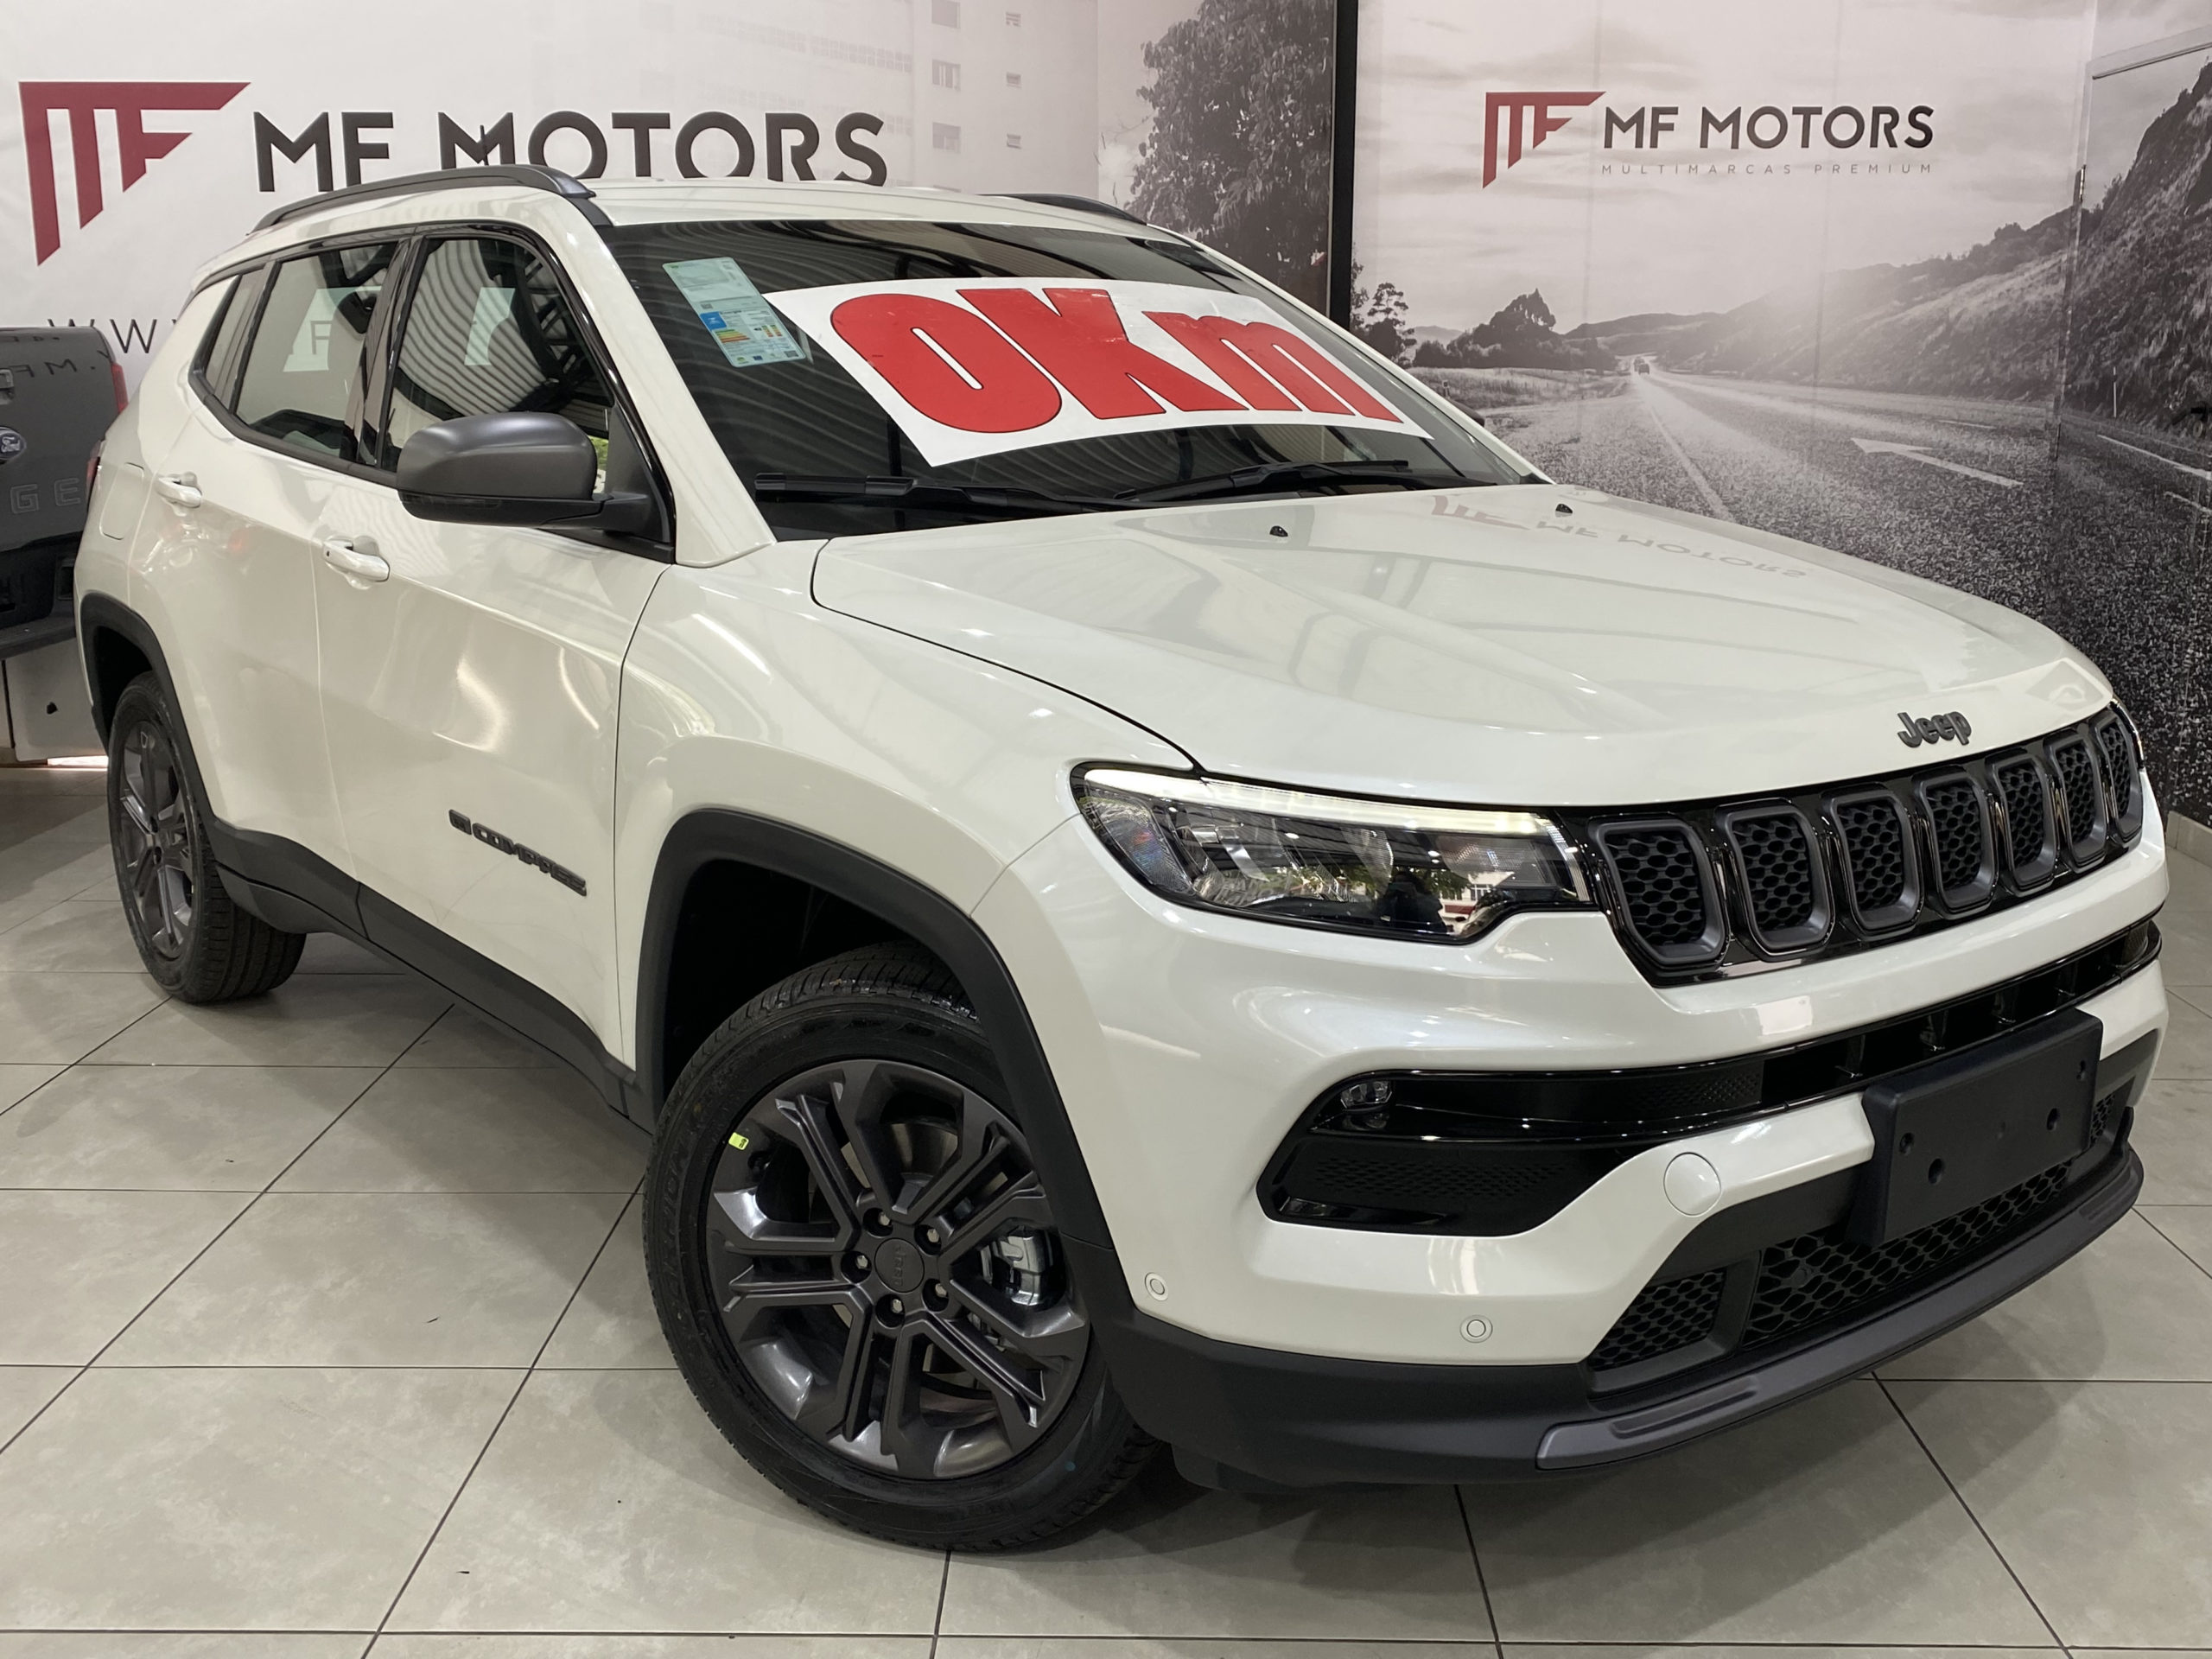 JEEP COMPASS T270 TURBO 80 ANOS